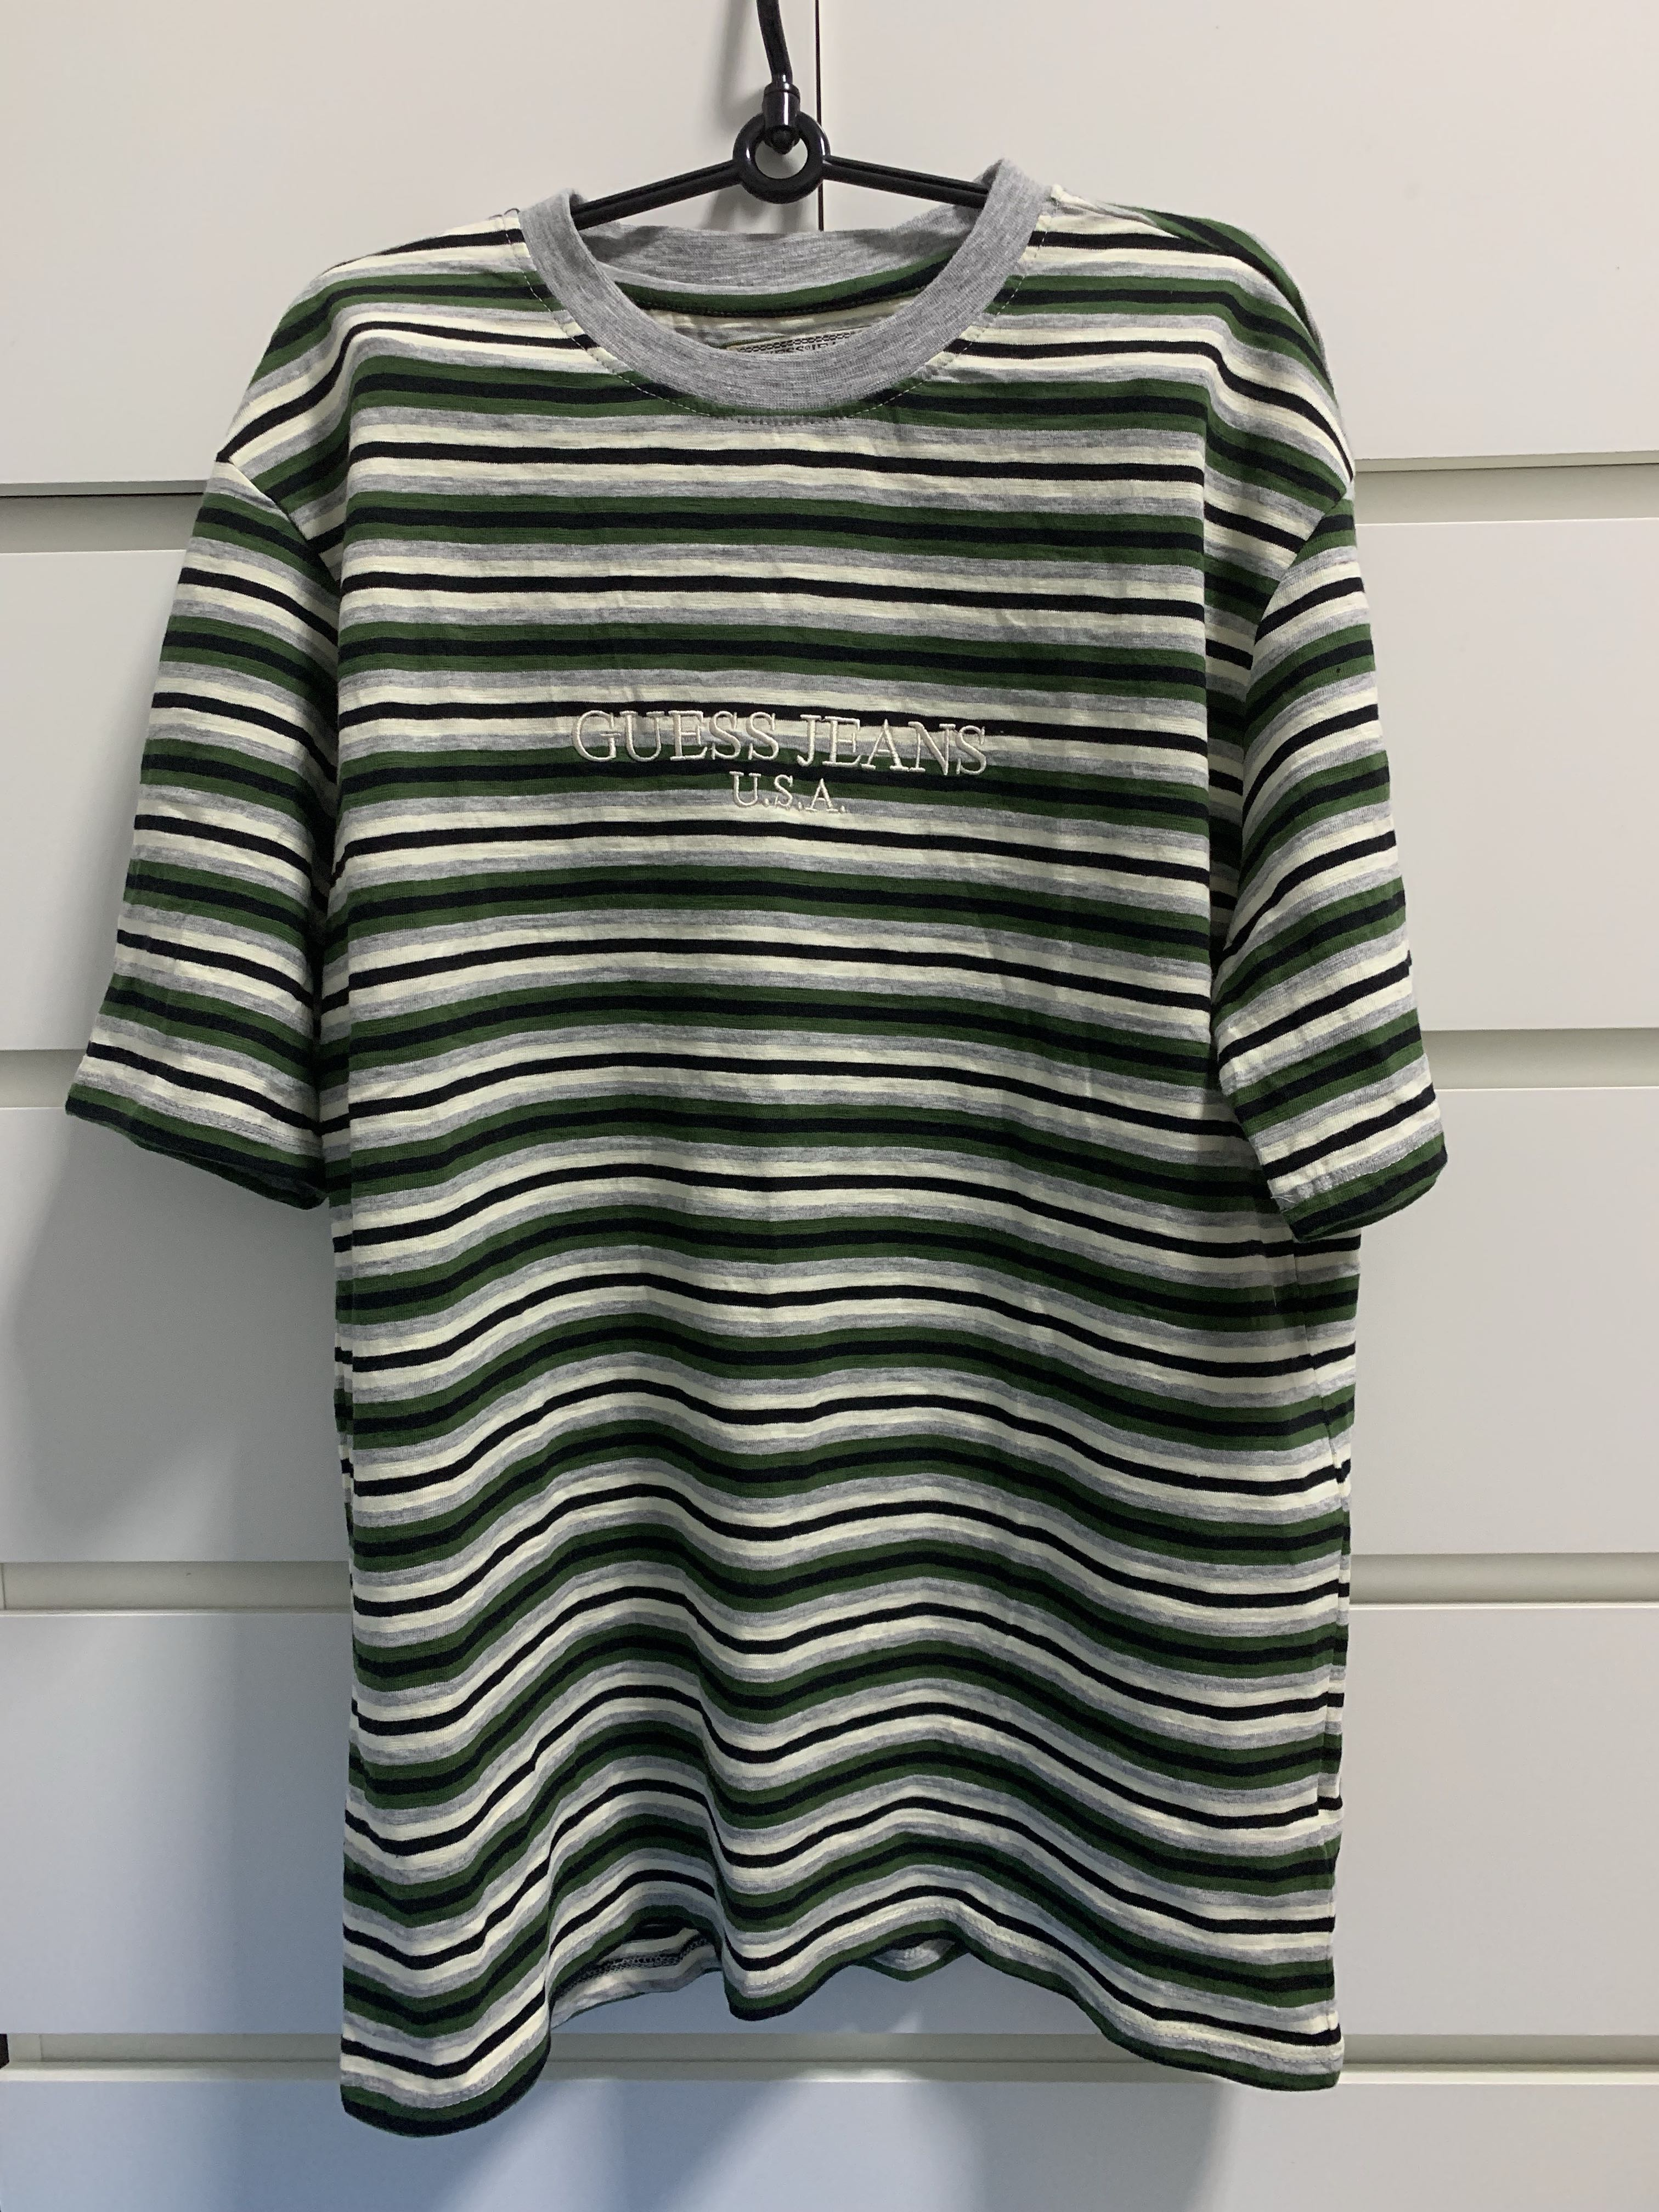 aab0e11051cb Guess Tee, Men's Fashion, Clothes, Tops on Carousell